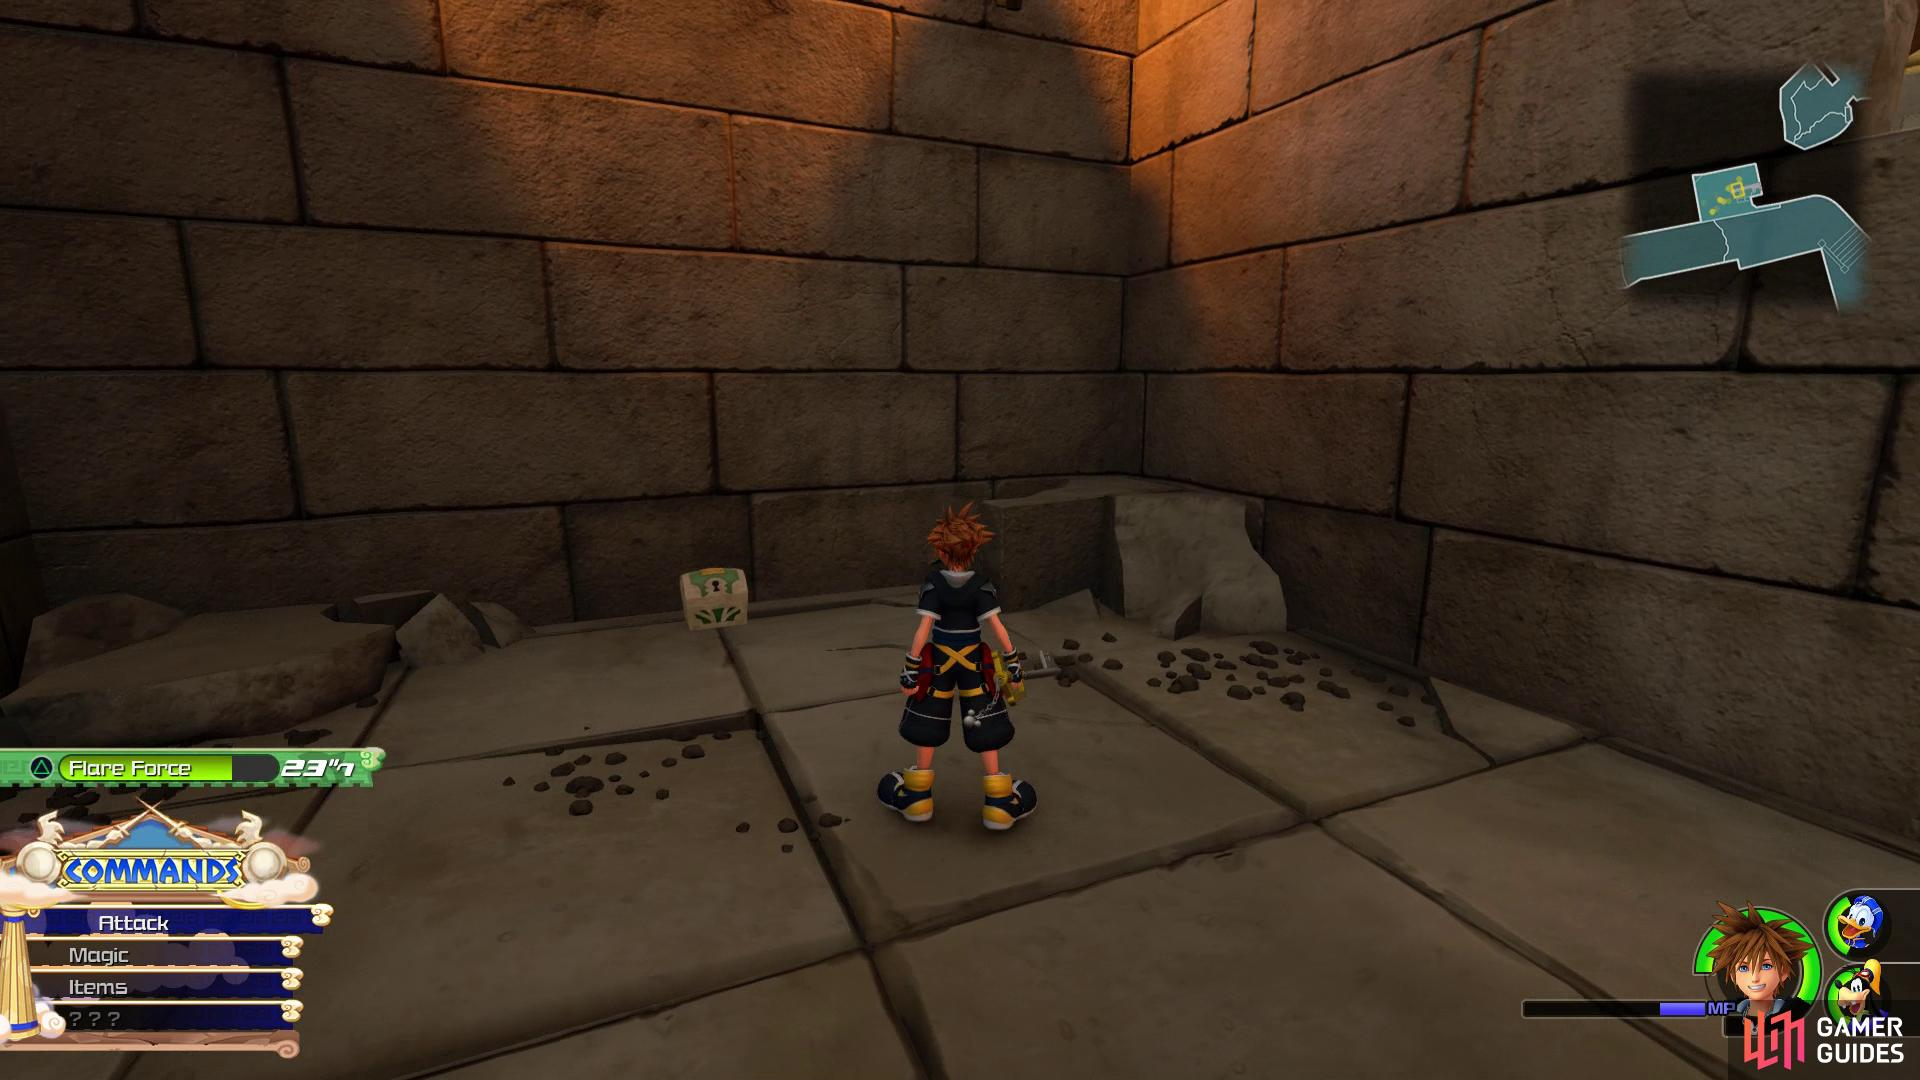 run up the wall once you reach the area with the burning ground to find this chest.